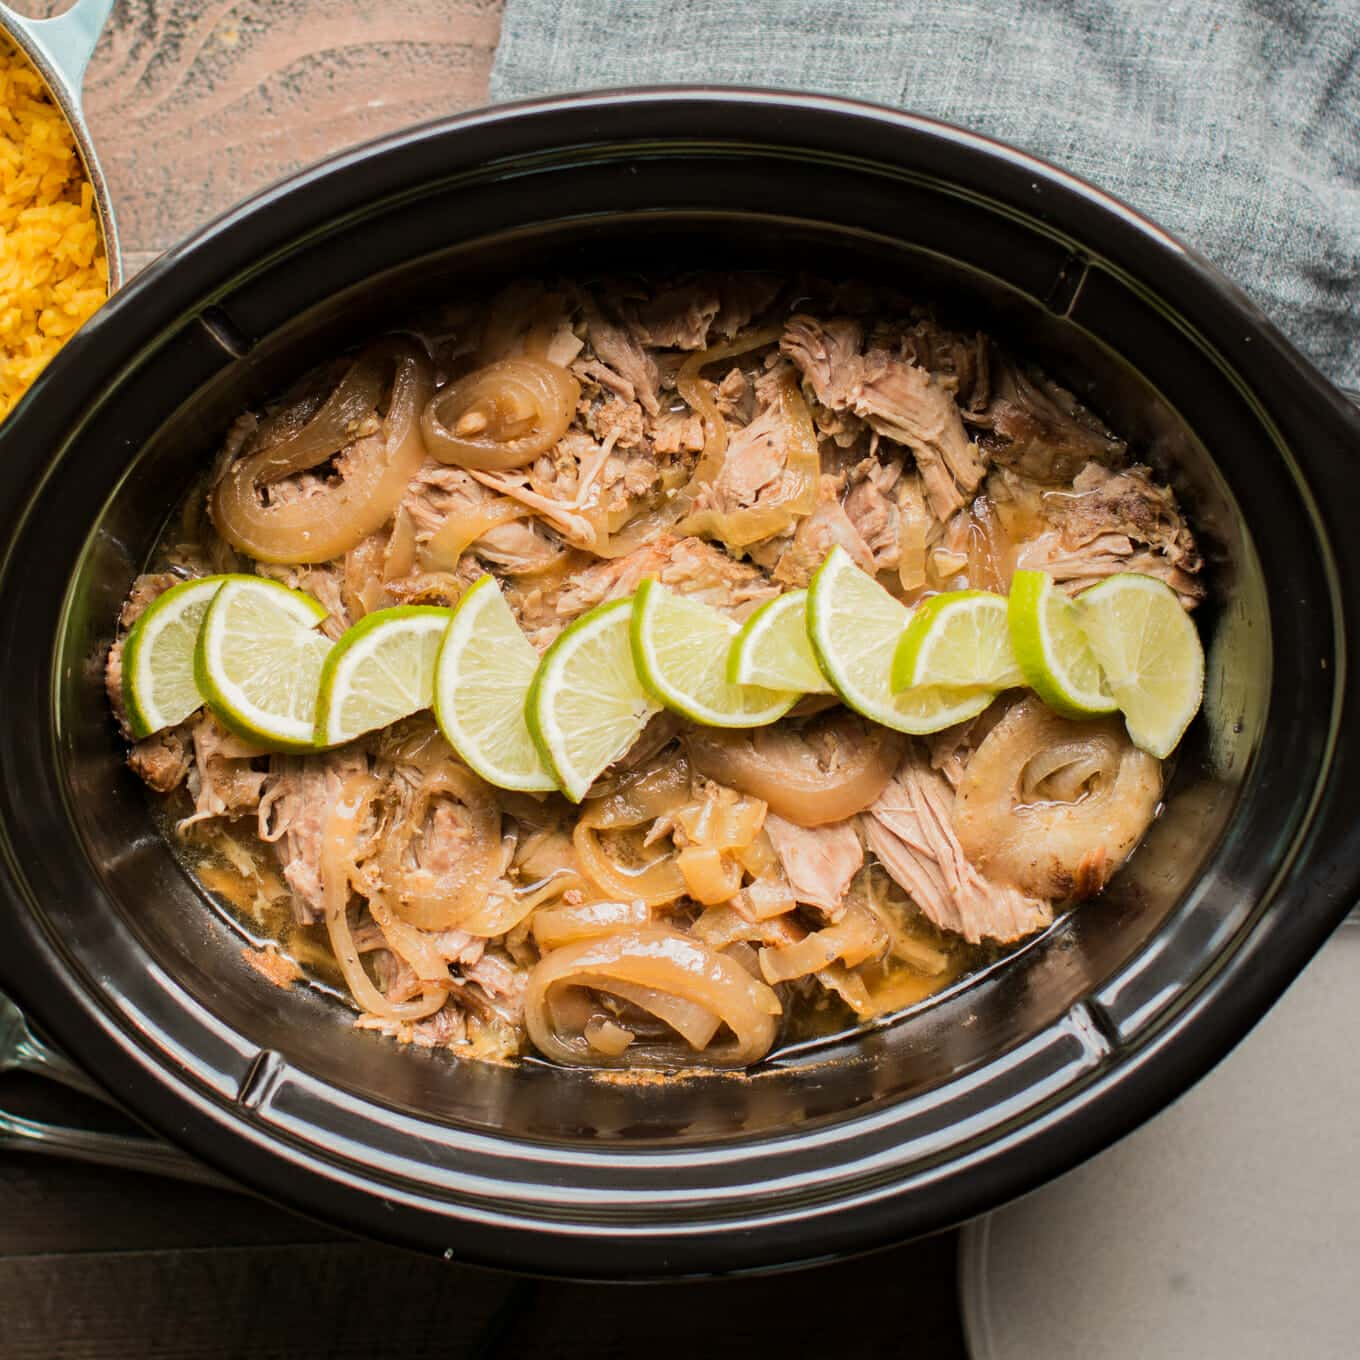 top view of shredded Cuban pork in slow cooker garnished with limes